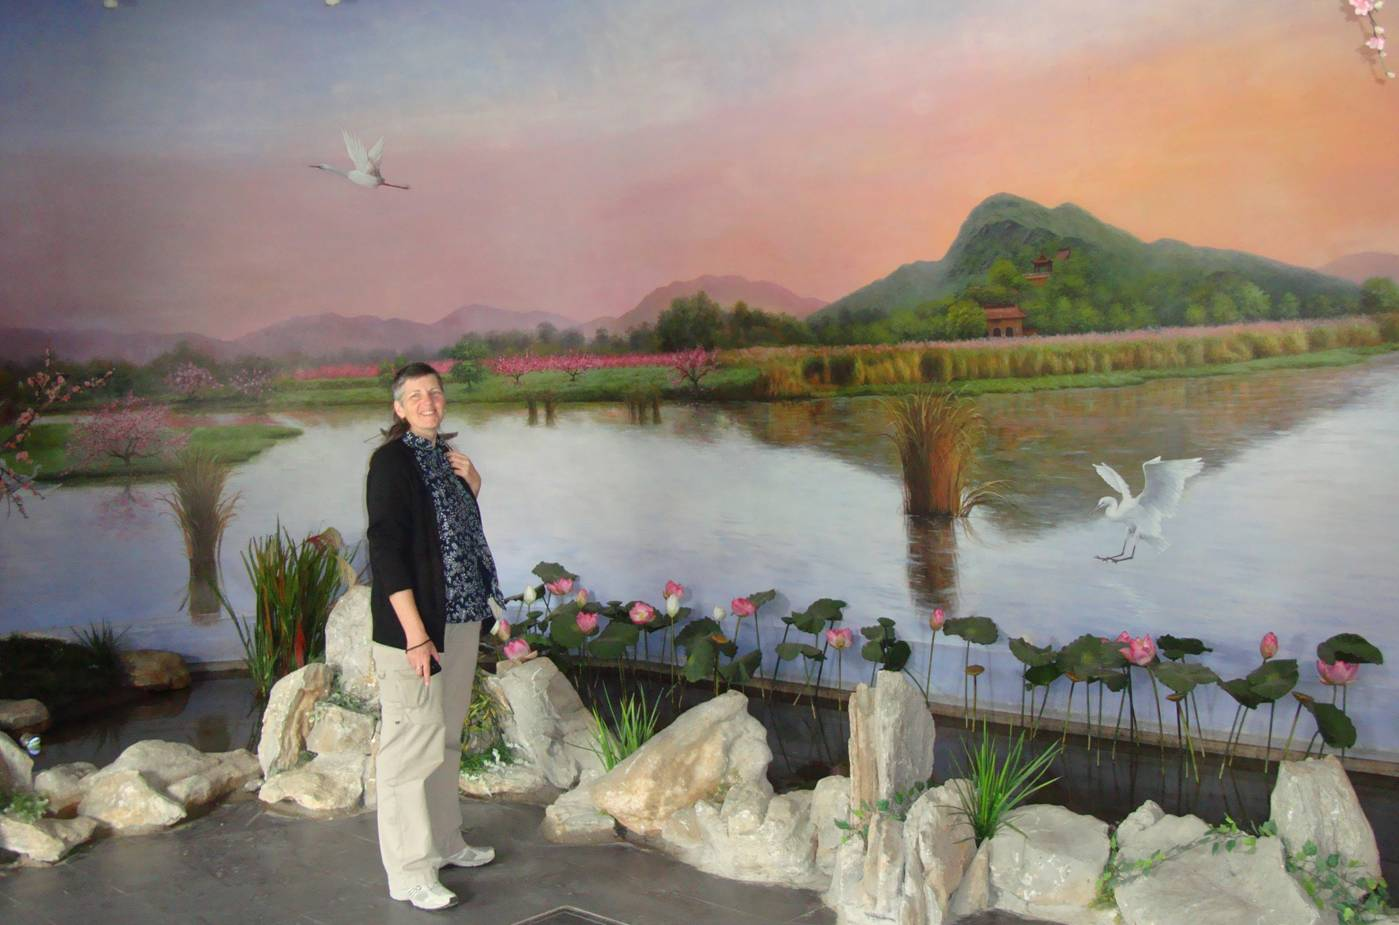 Picture:  Ruth stands in front of a huge mural depicting the orchards of Yang Shan.  The Tao Bo Yuan (Peach Museum), Yang Shan, Wuxi, China